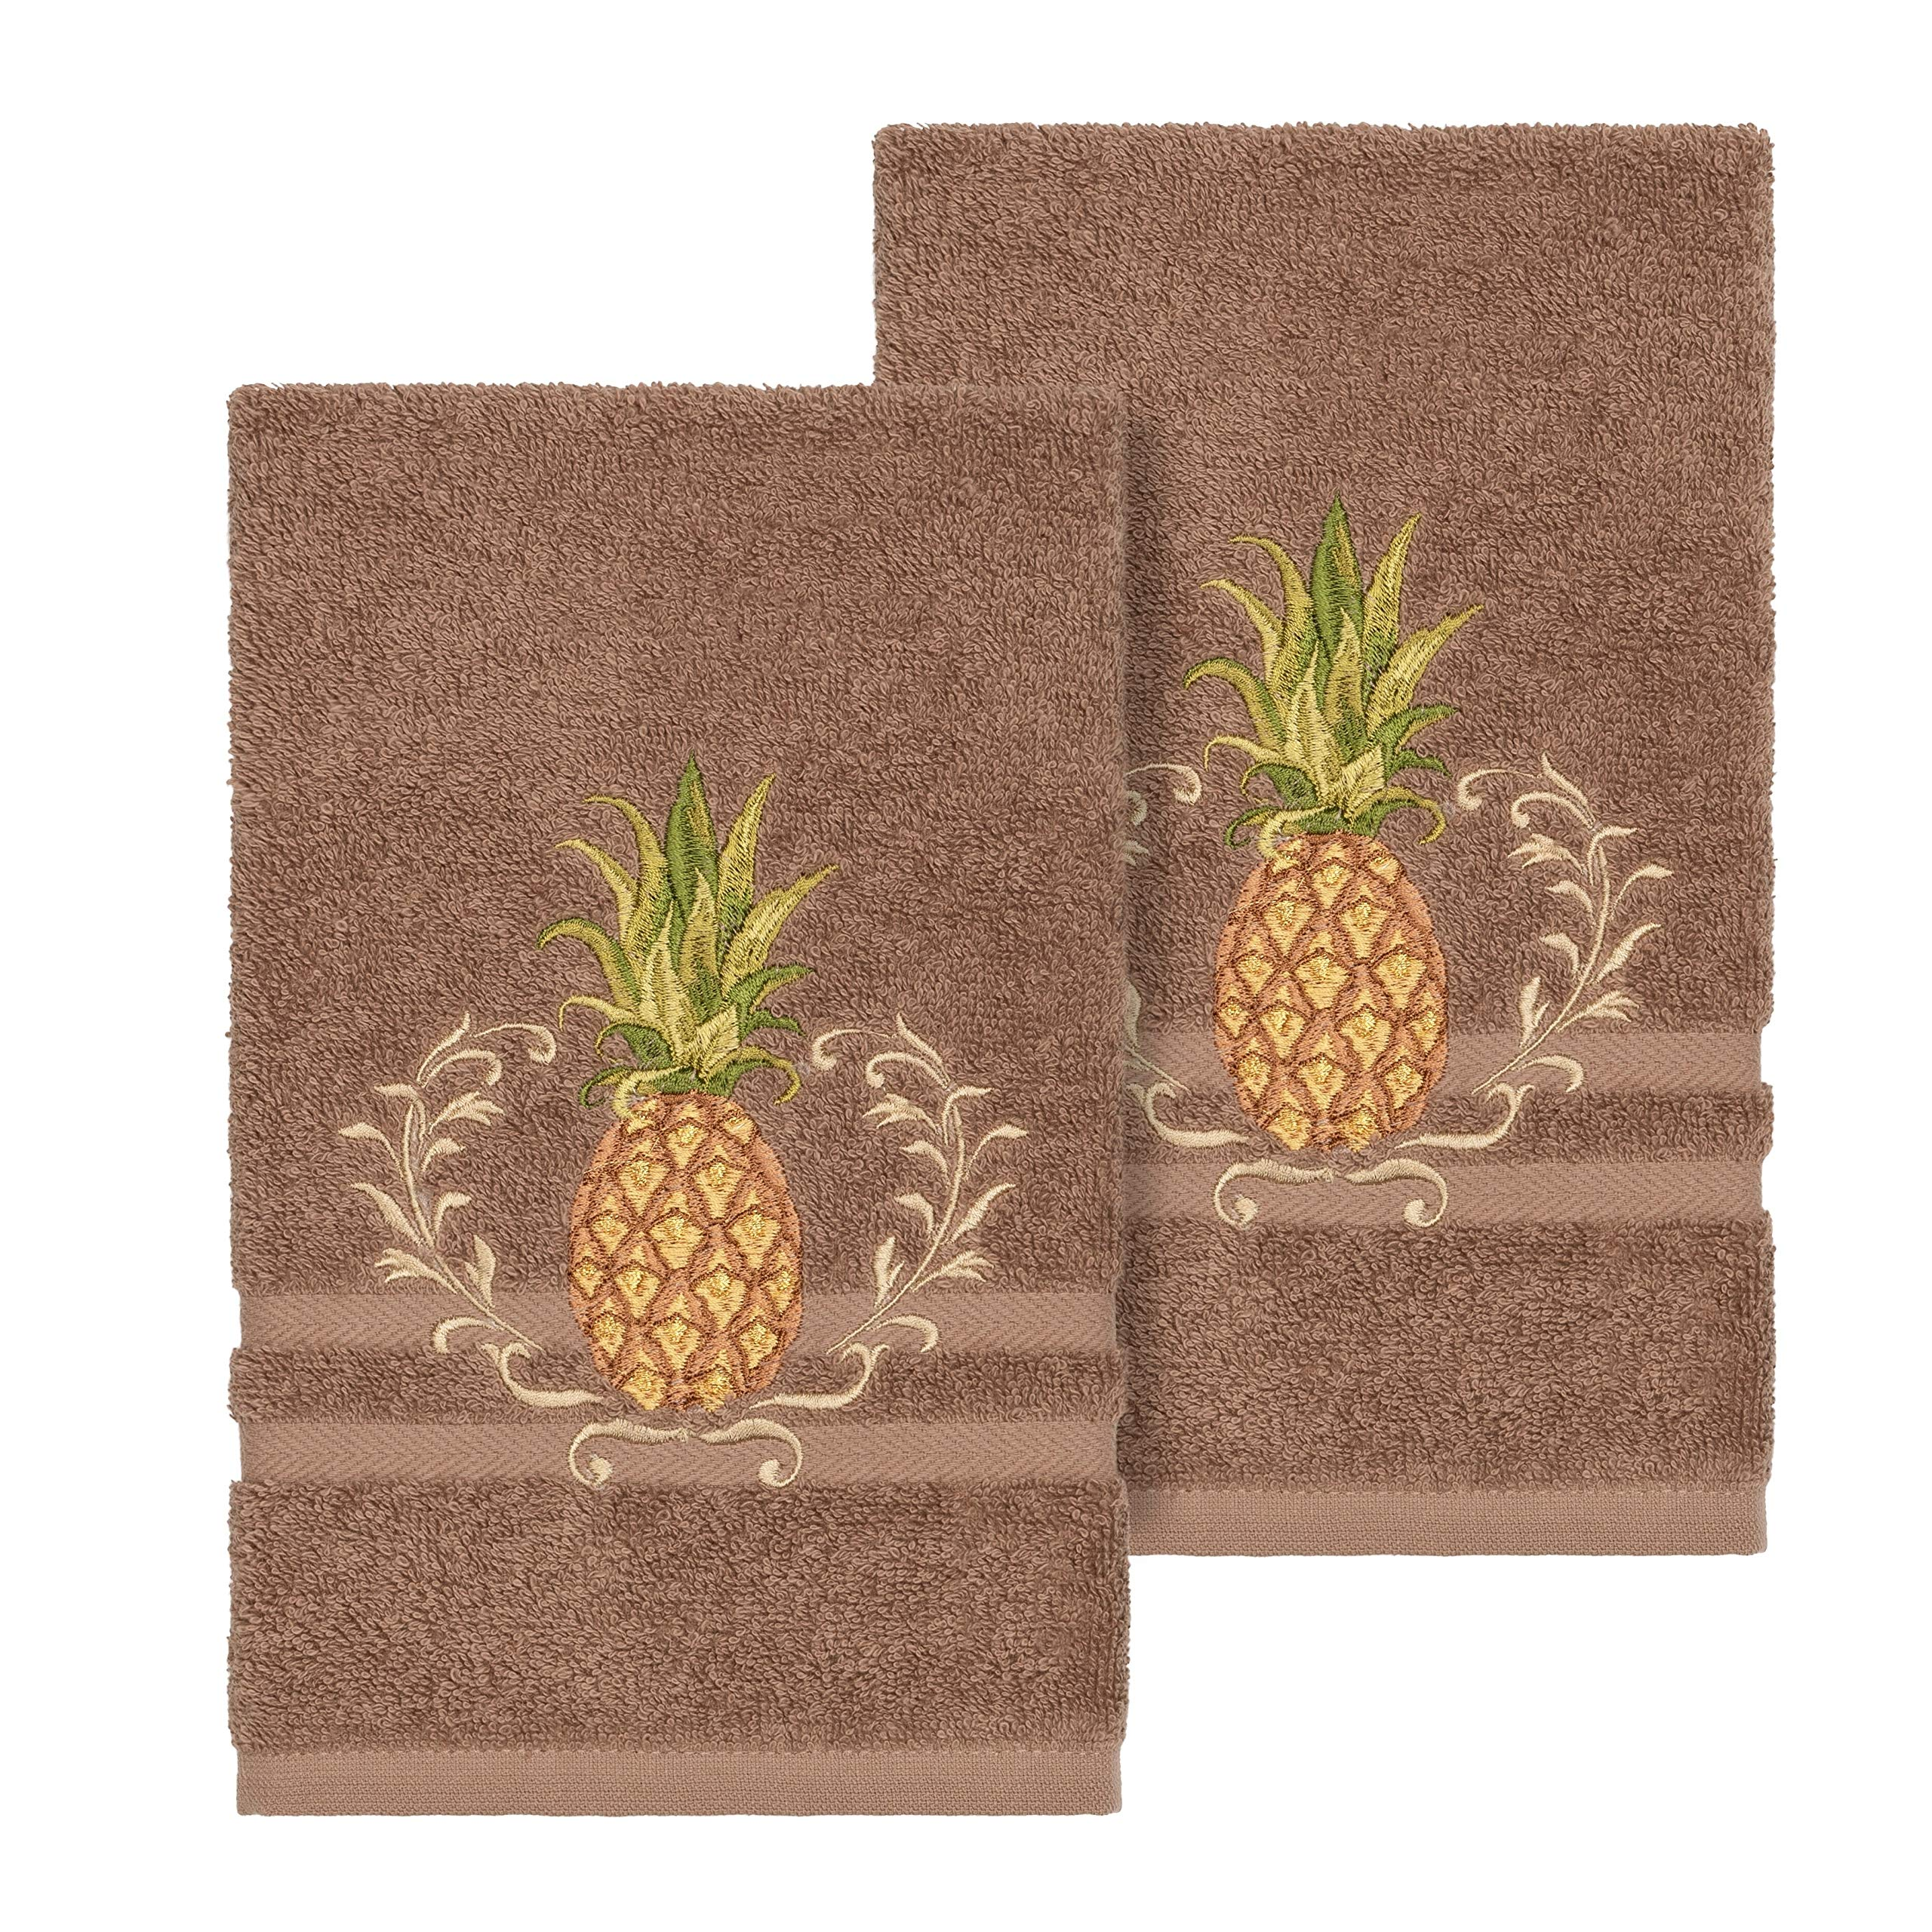 Overstock Authentic Hotel and Spa Turkish Cotton Pineapple Embroidered Latte Brown 2-Piece Towel Hand Set